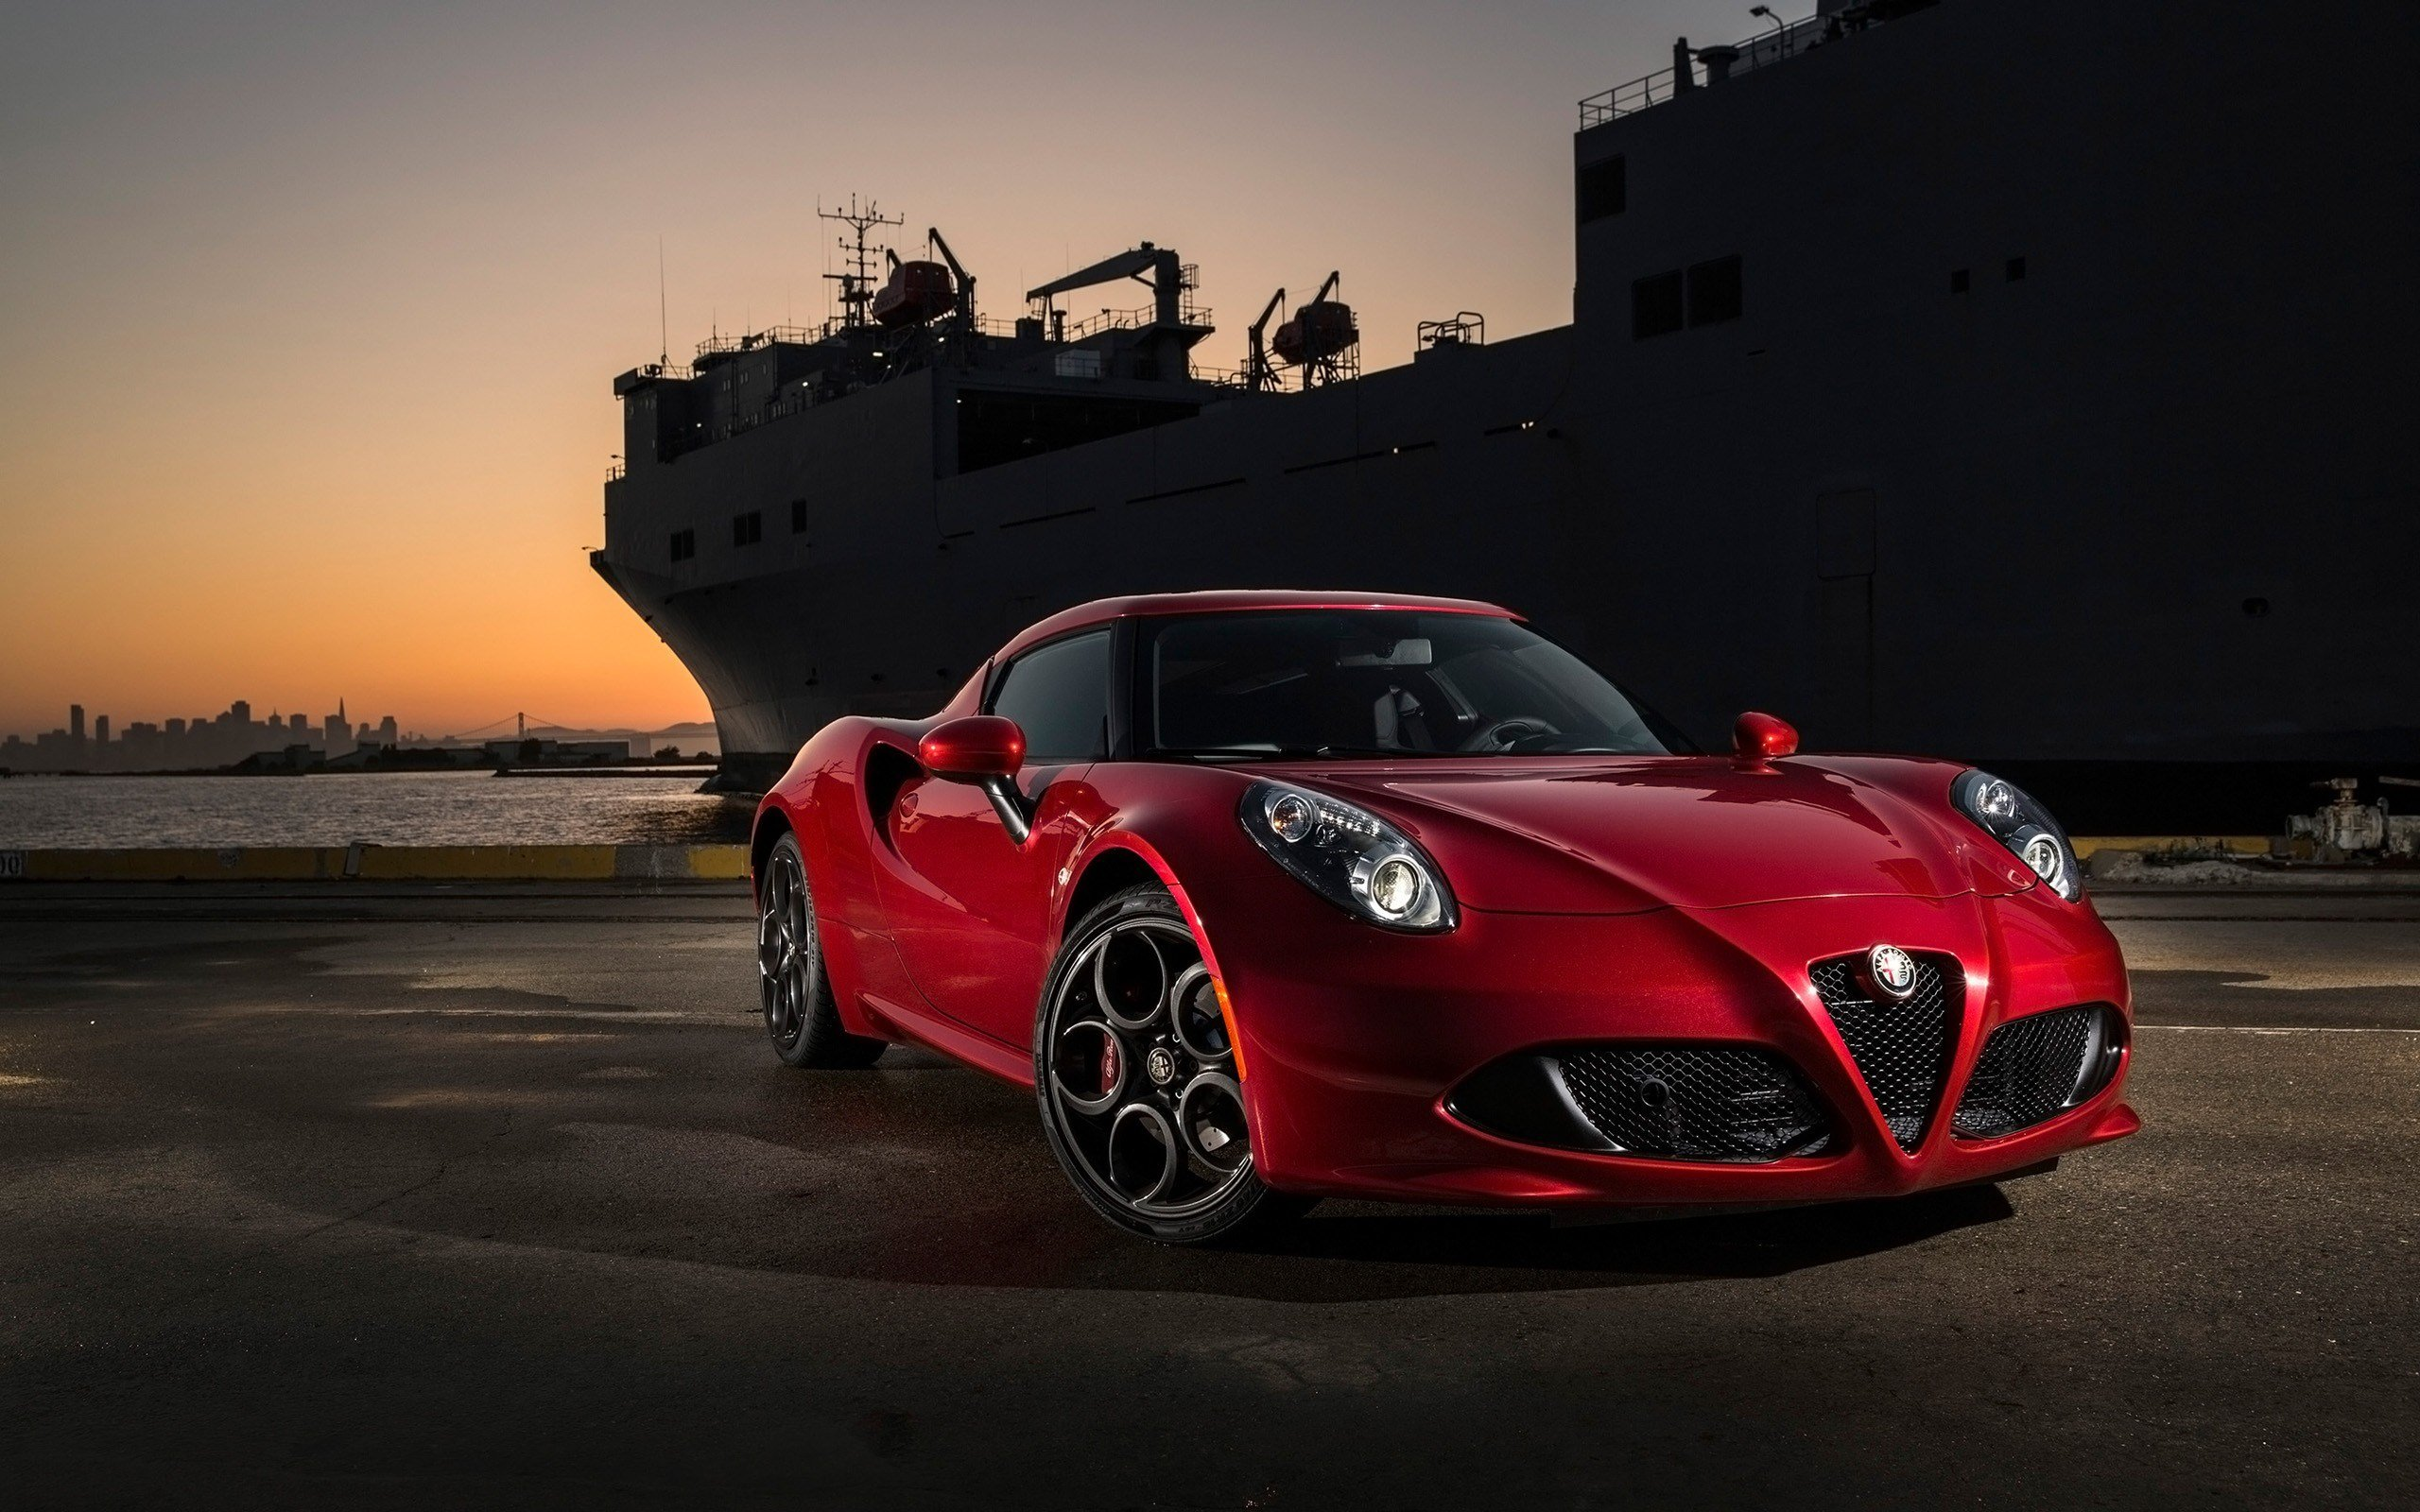 Latest 2016 Alfa Romeo 4C 2 Wallpaper Hd Car Wallpapers Id 6651 Free Download